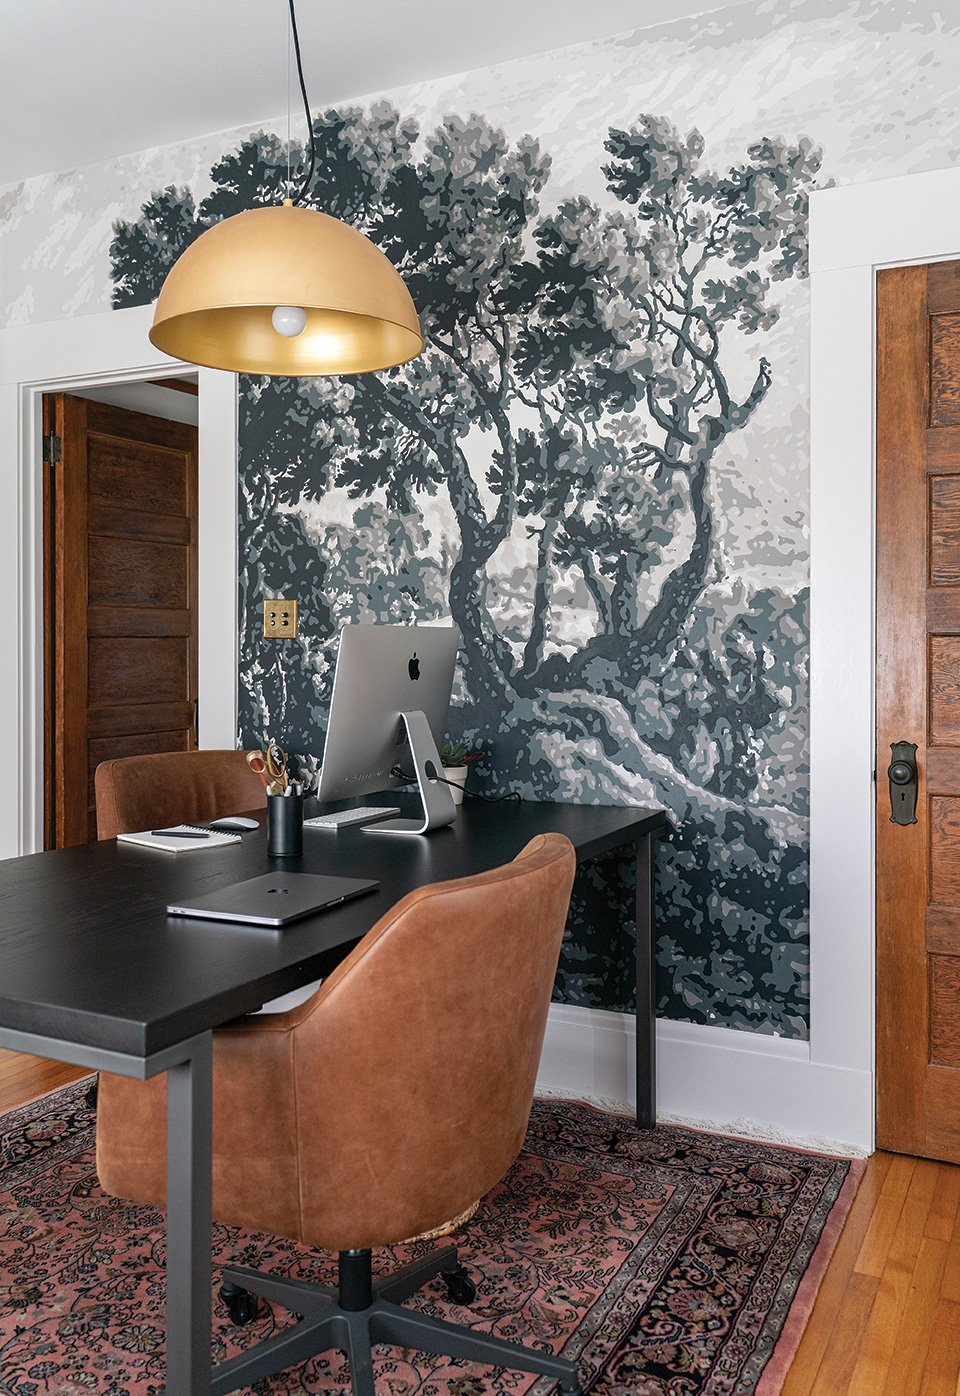 DIY mural projector mural tree paint-by-numbers in a home office neutral tones